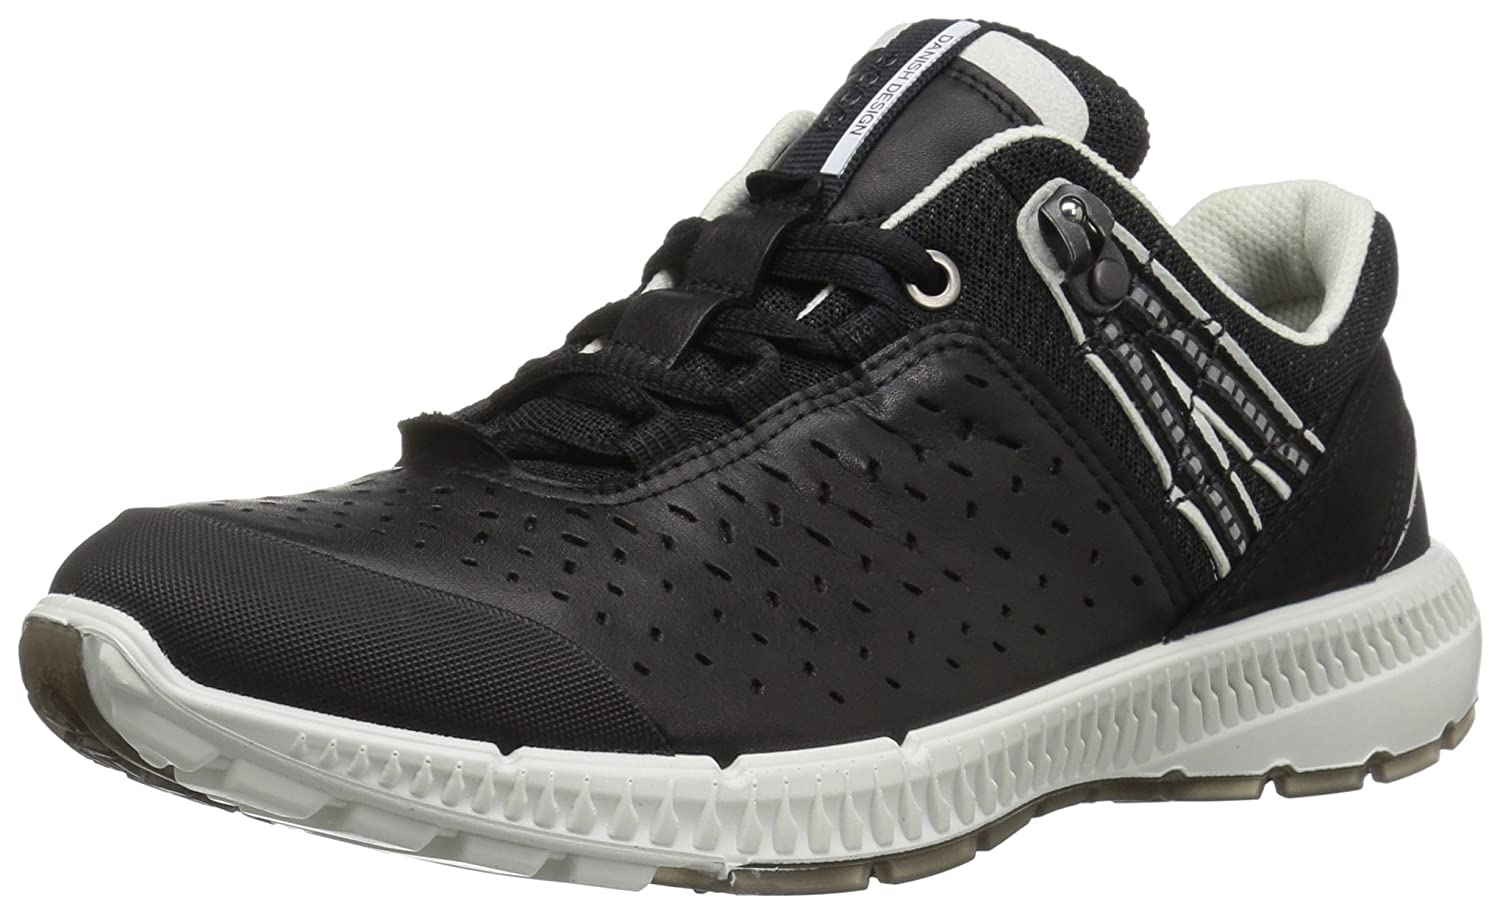 ECCO Women's Women's Intrinsic Tr Walker Fashion Sneaker B01M9F5BXB 41 EU / 10-10.5 US|Black/Black